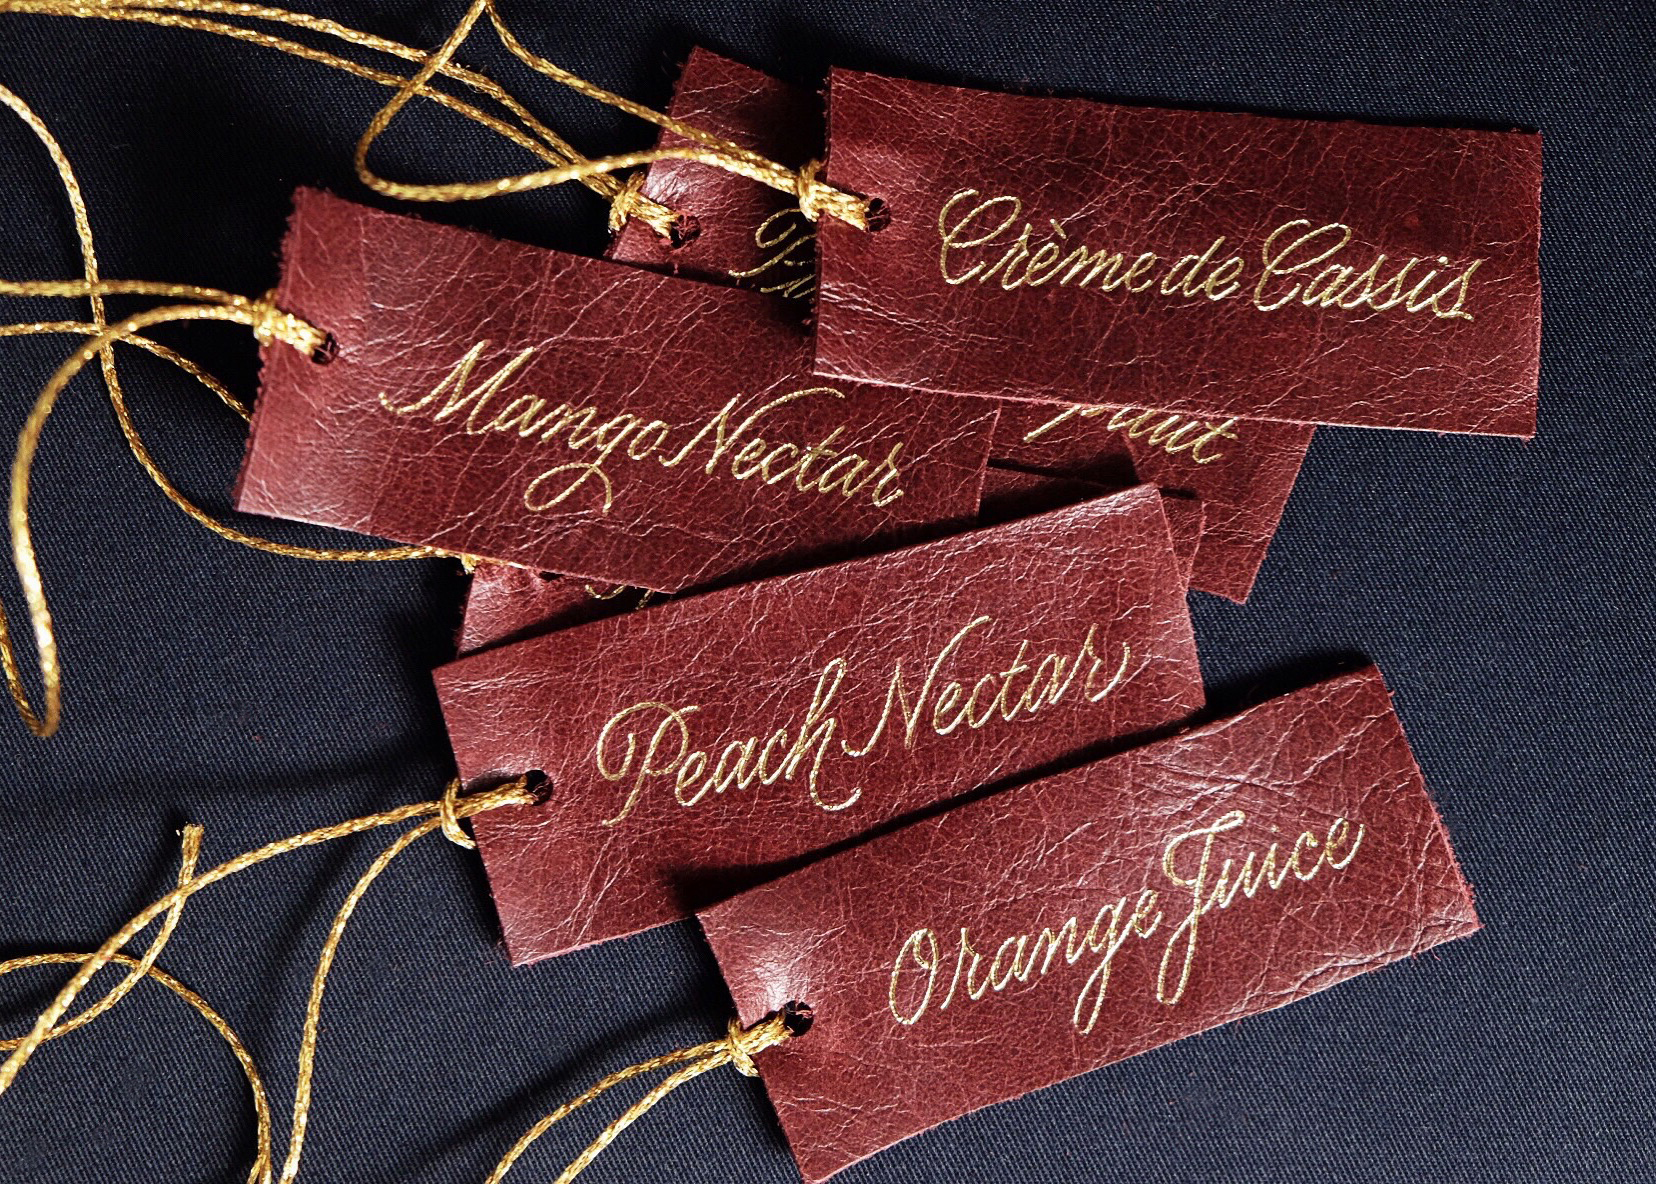 Leather name tags with gold foil calligraphy   by www.chavelli.com